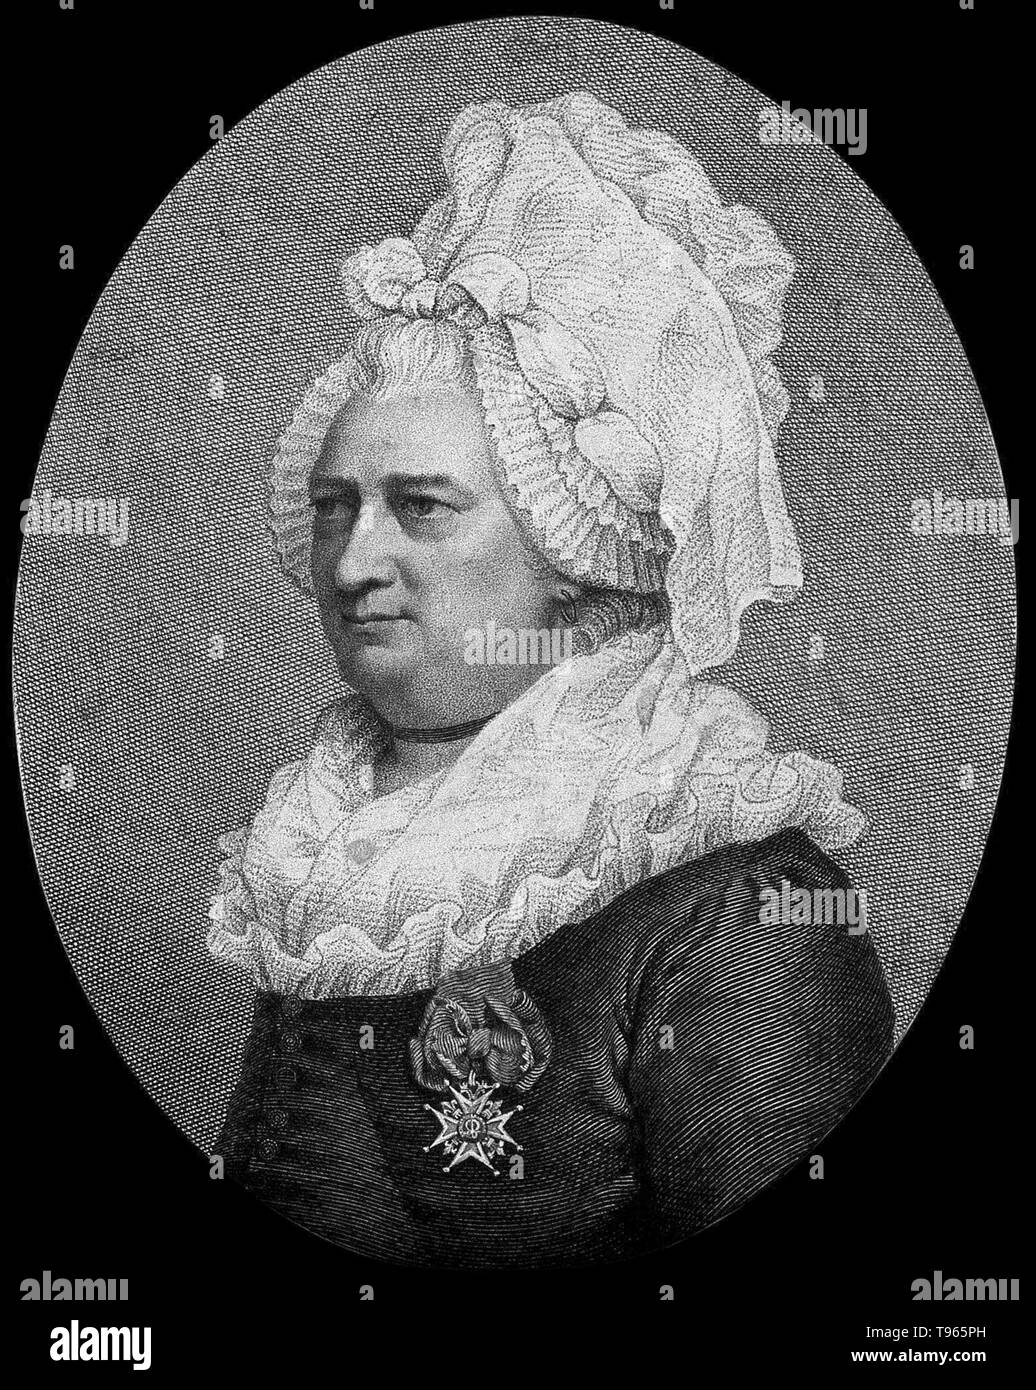 Charles-Geneviève-Louis-Auguste-André-Timothée d'Éon de Beaumont (October 5 1728 - May 21, 1810), usually known as the Chevalier d'Éon, was a French diplomat, spy, freemason and soldier who fought in the Seven Years' War. D'Éon had androgynous physical characteristics and natural abilities as a mimic, good features for a spy. D'Éon appeared publicly as a man and pursued masculine occupations for 49 years, although during that time d'Éon successfully infiltrated the court of Empress Elizabeth of Russia by presenting as a woman. For 33 years, from 1777, d'Éon dressed as a woman, identifying as f - Stock Image